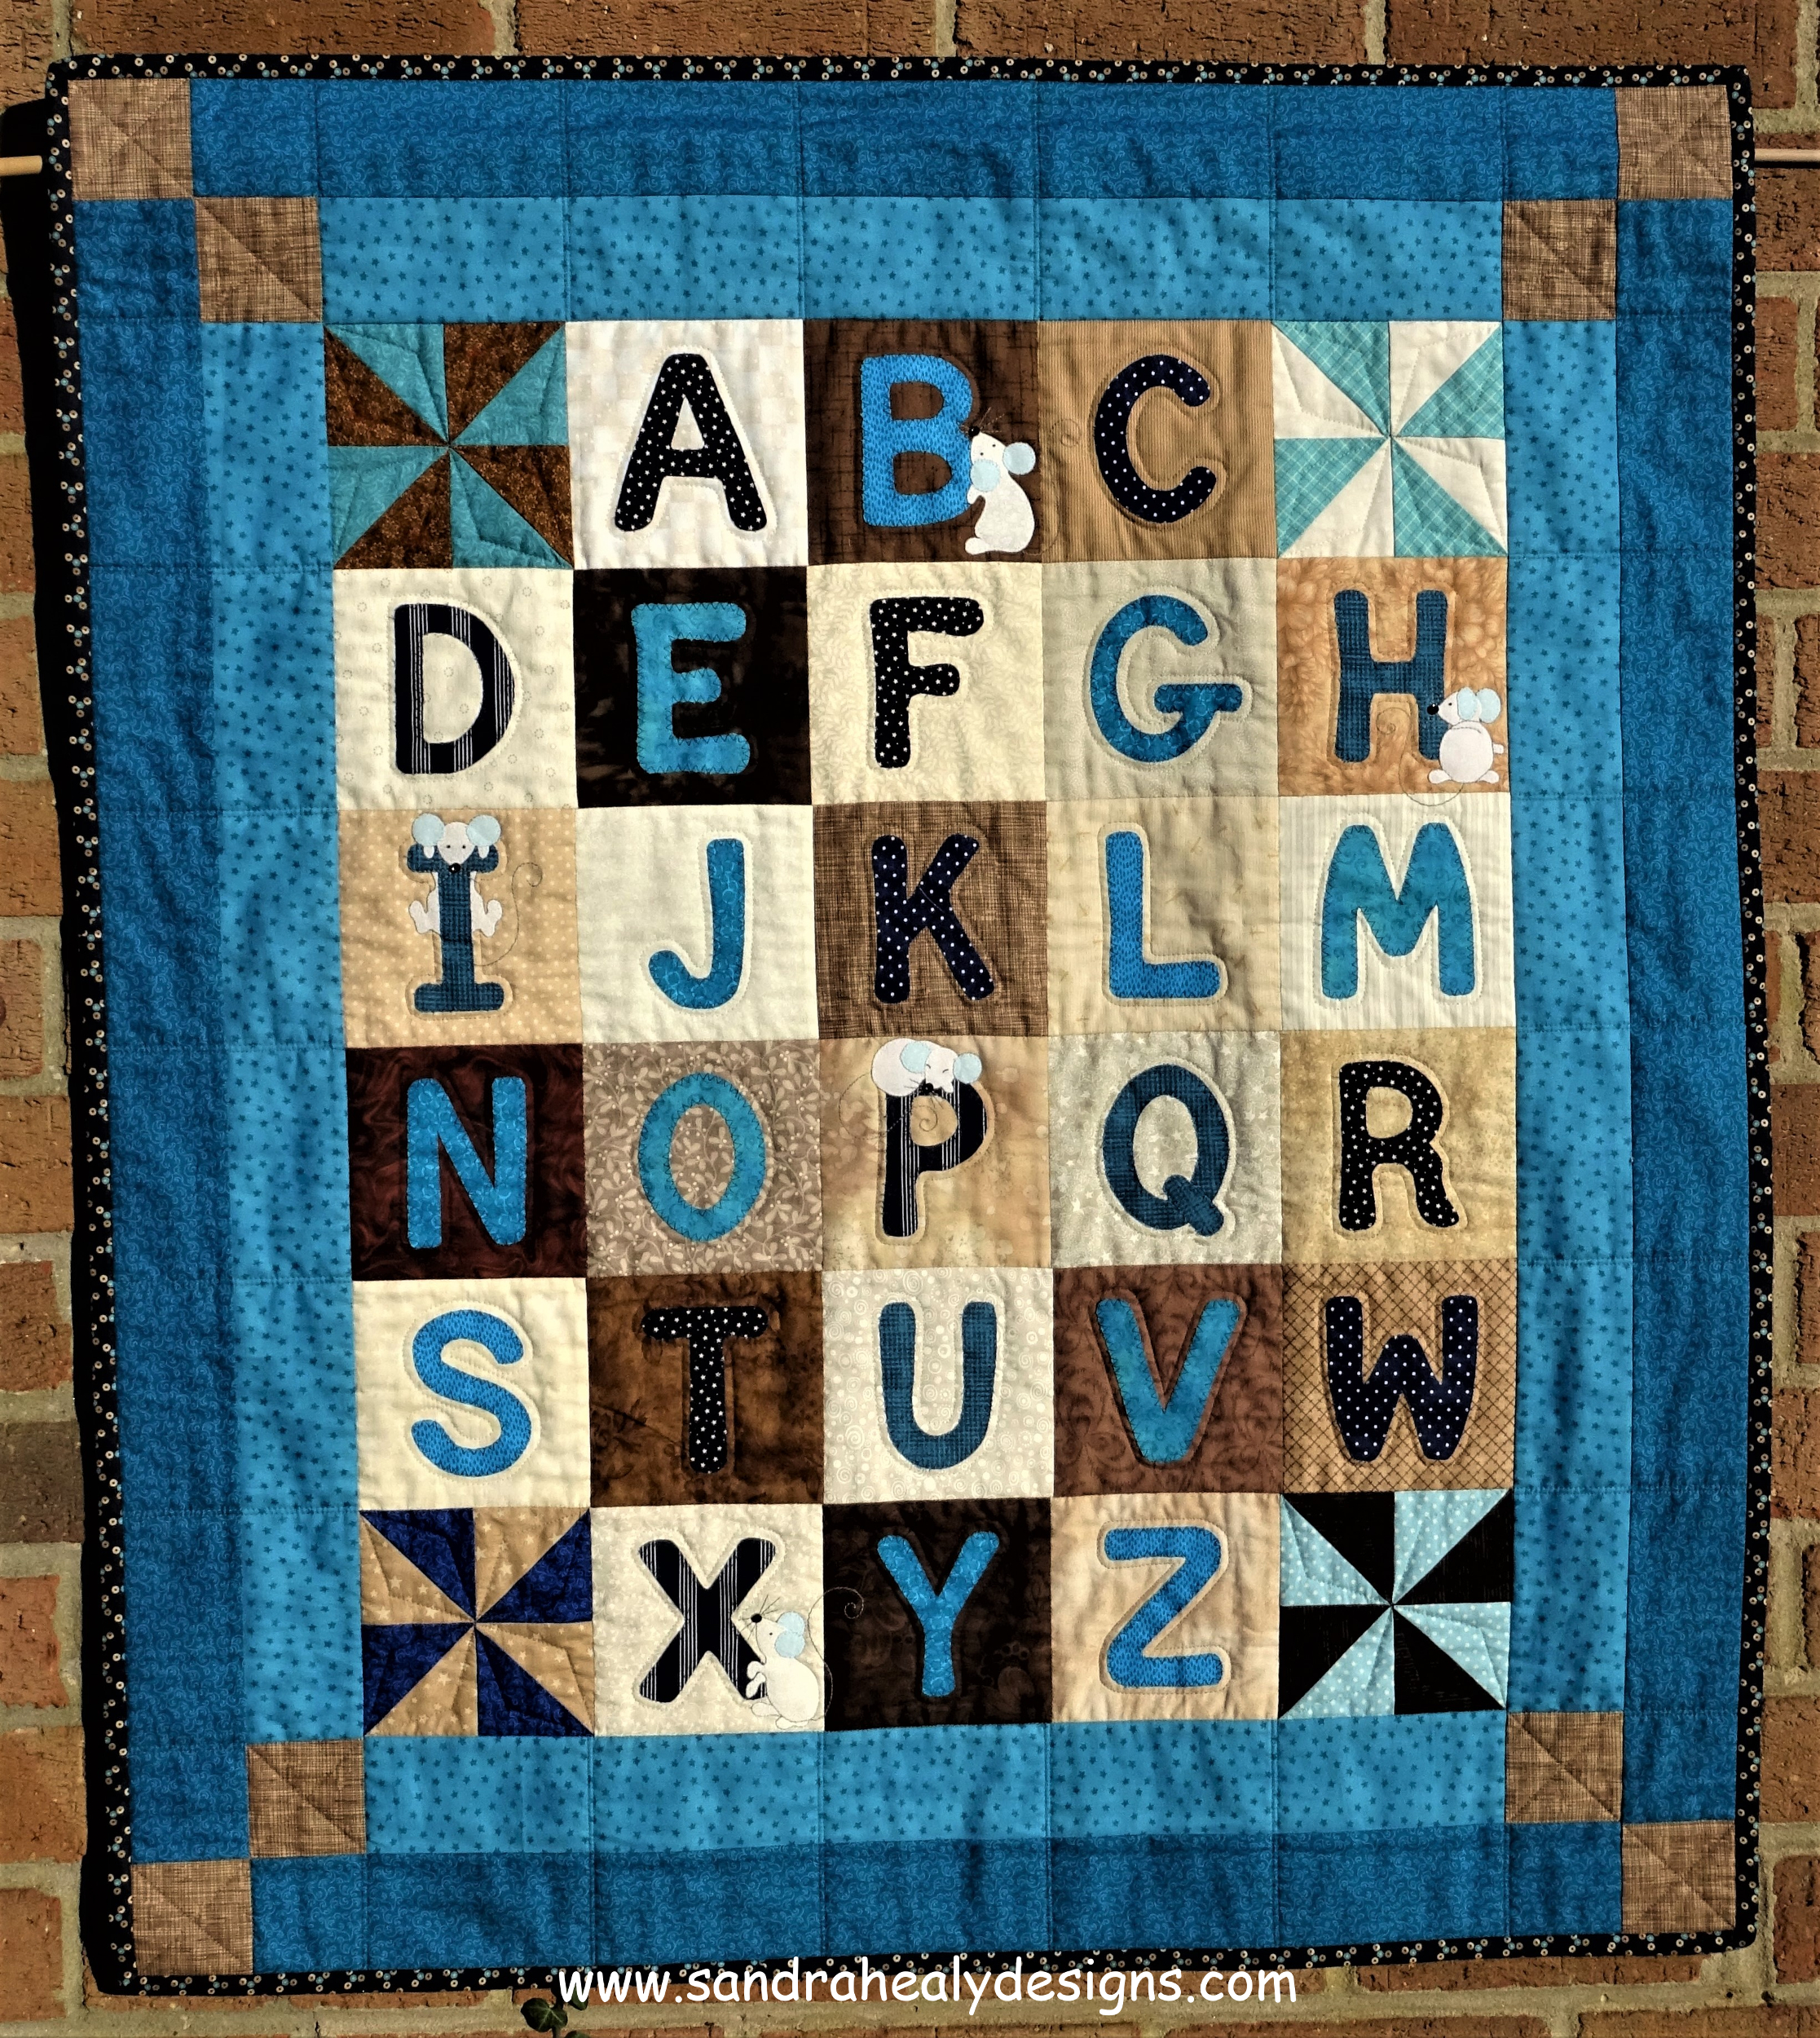 Lettering Templates For Quilting : Alphabet Quilt Pattern Wall Hanging - Sandra Healy Designs Quilt Pattern Designer